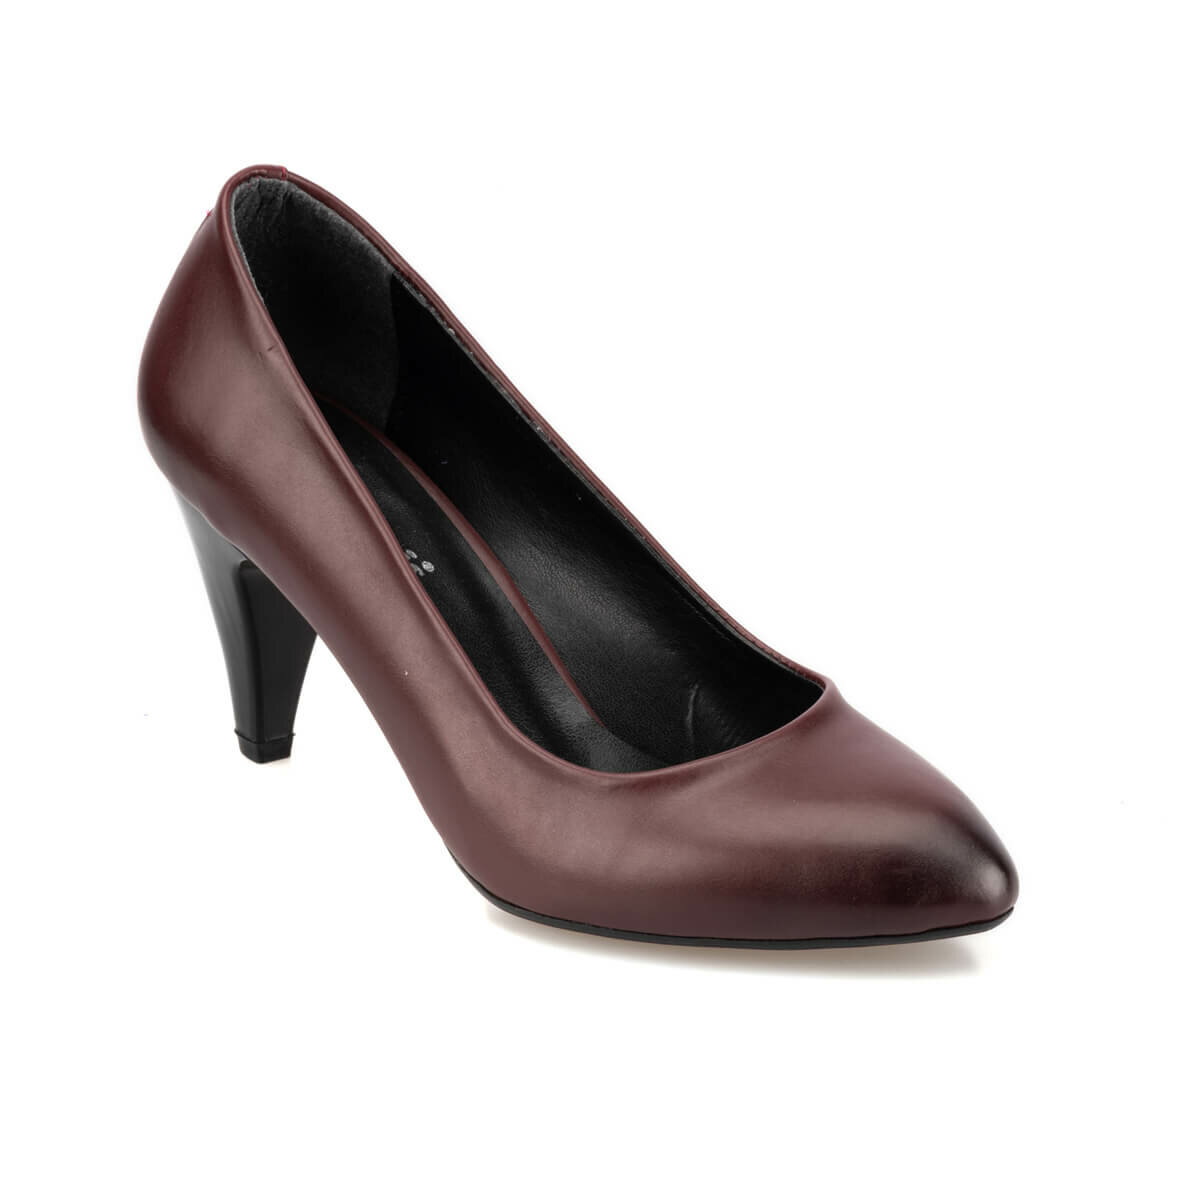 FLO 92.309022.Z Burgundy Women 'S Shoes Polaris